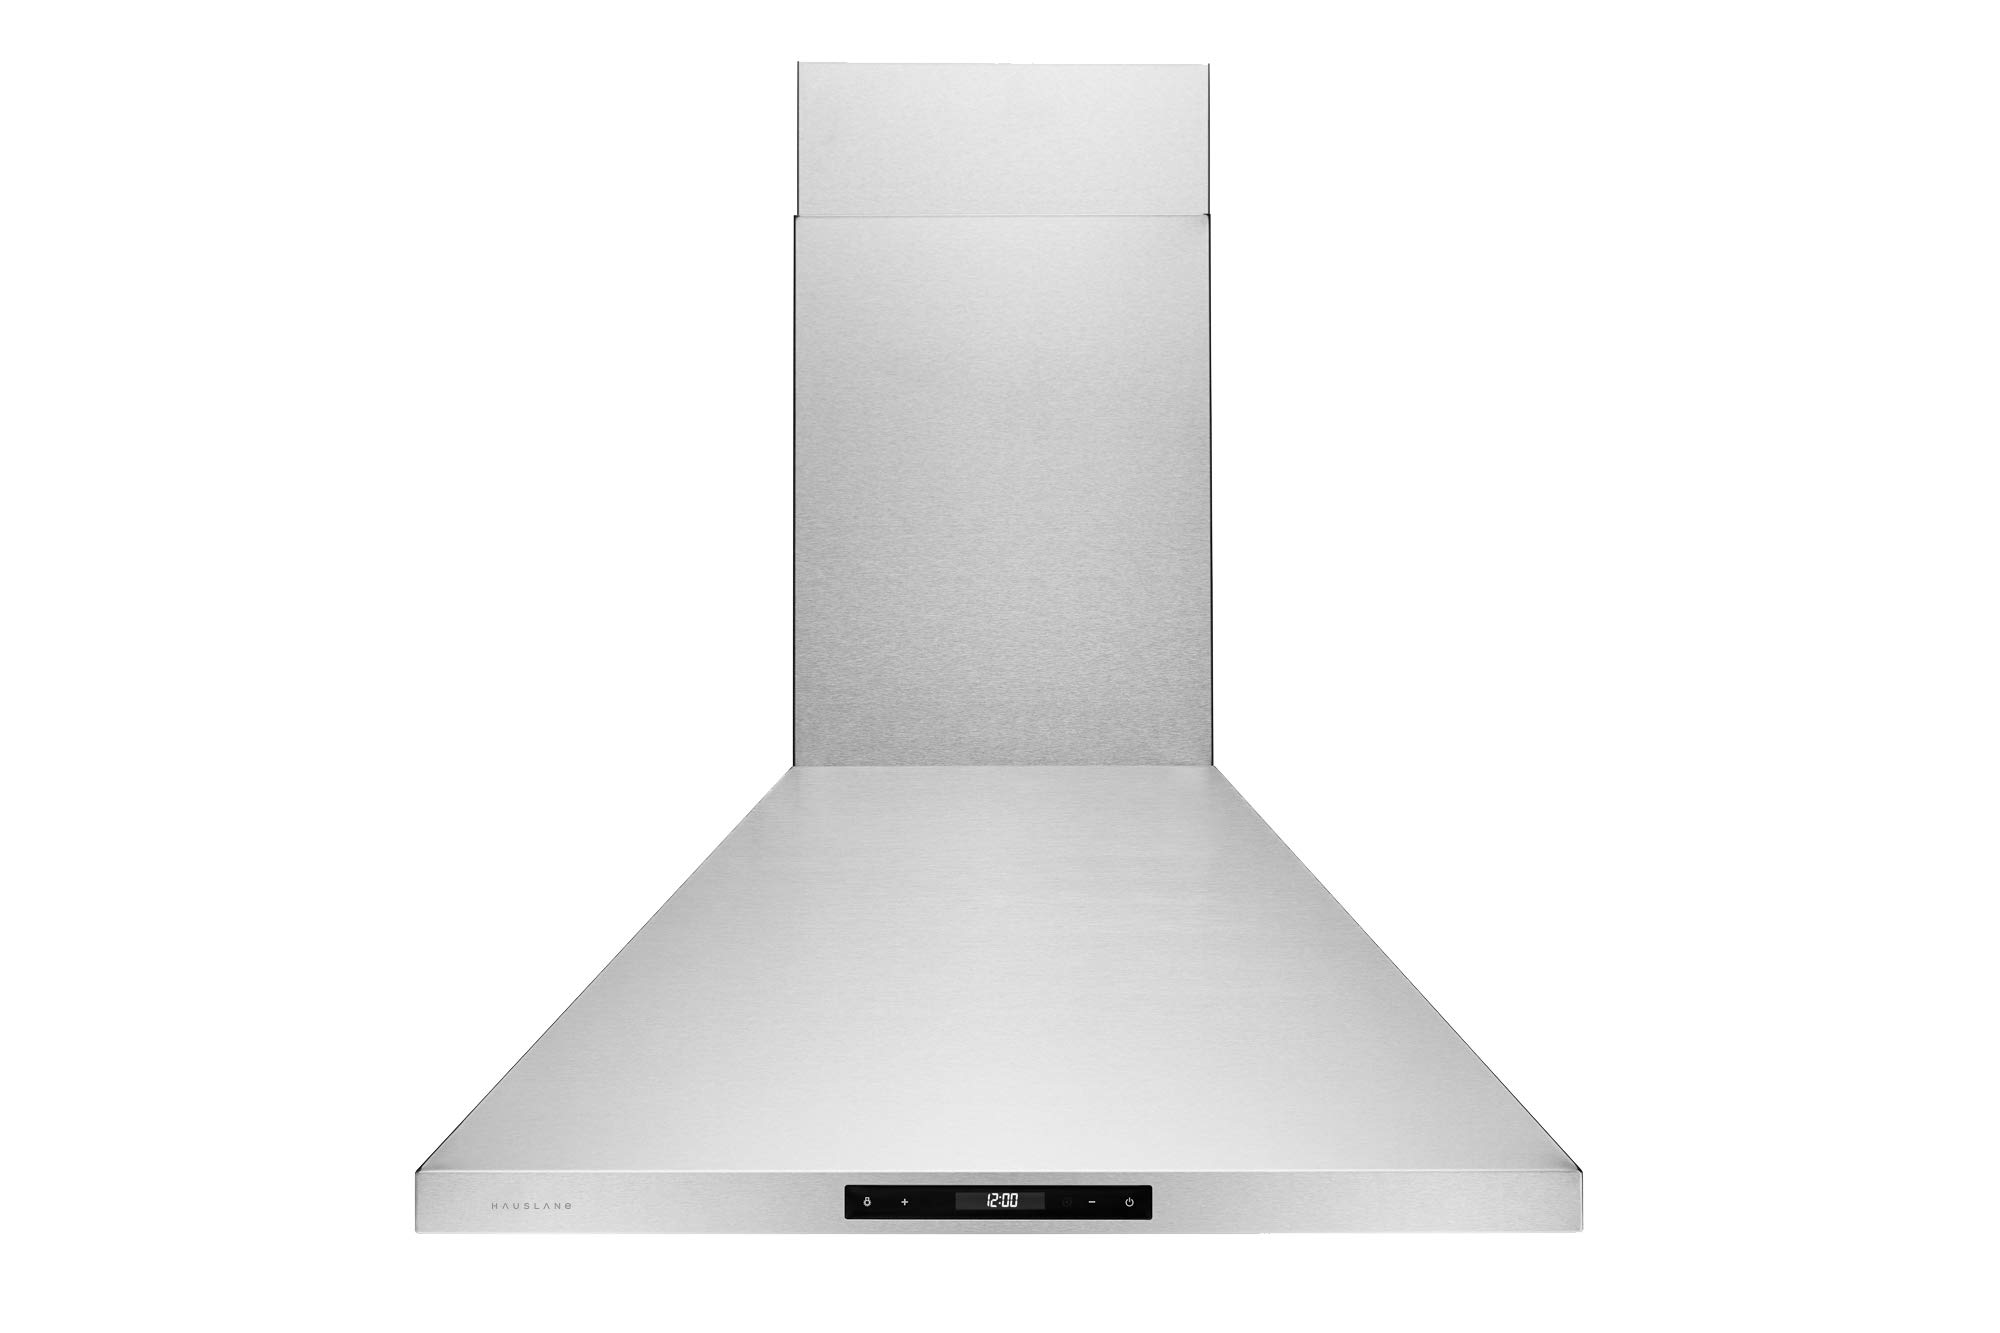 Hauslane | Chef Series Range Hood WM-538 36'' European Style Series 3 Speed Stainless Steel Wall-Mount Range Hood | 860 CFM | Touch Screen, Easy Clean Baffle Filters, LED Lamps | Duct or Ductless